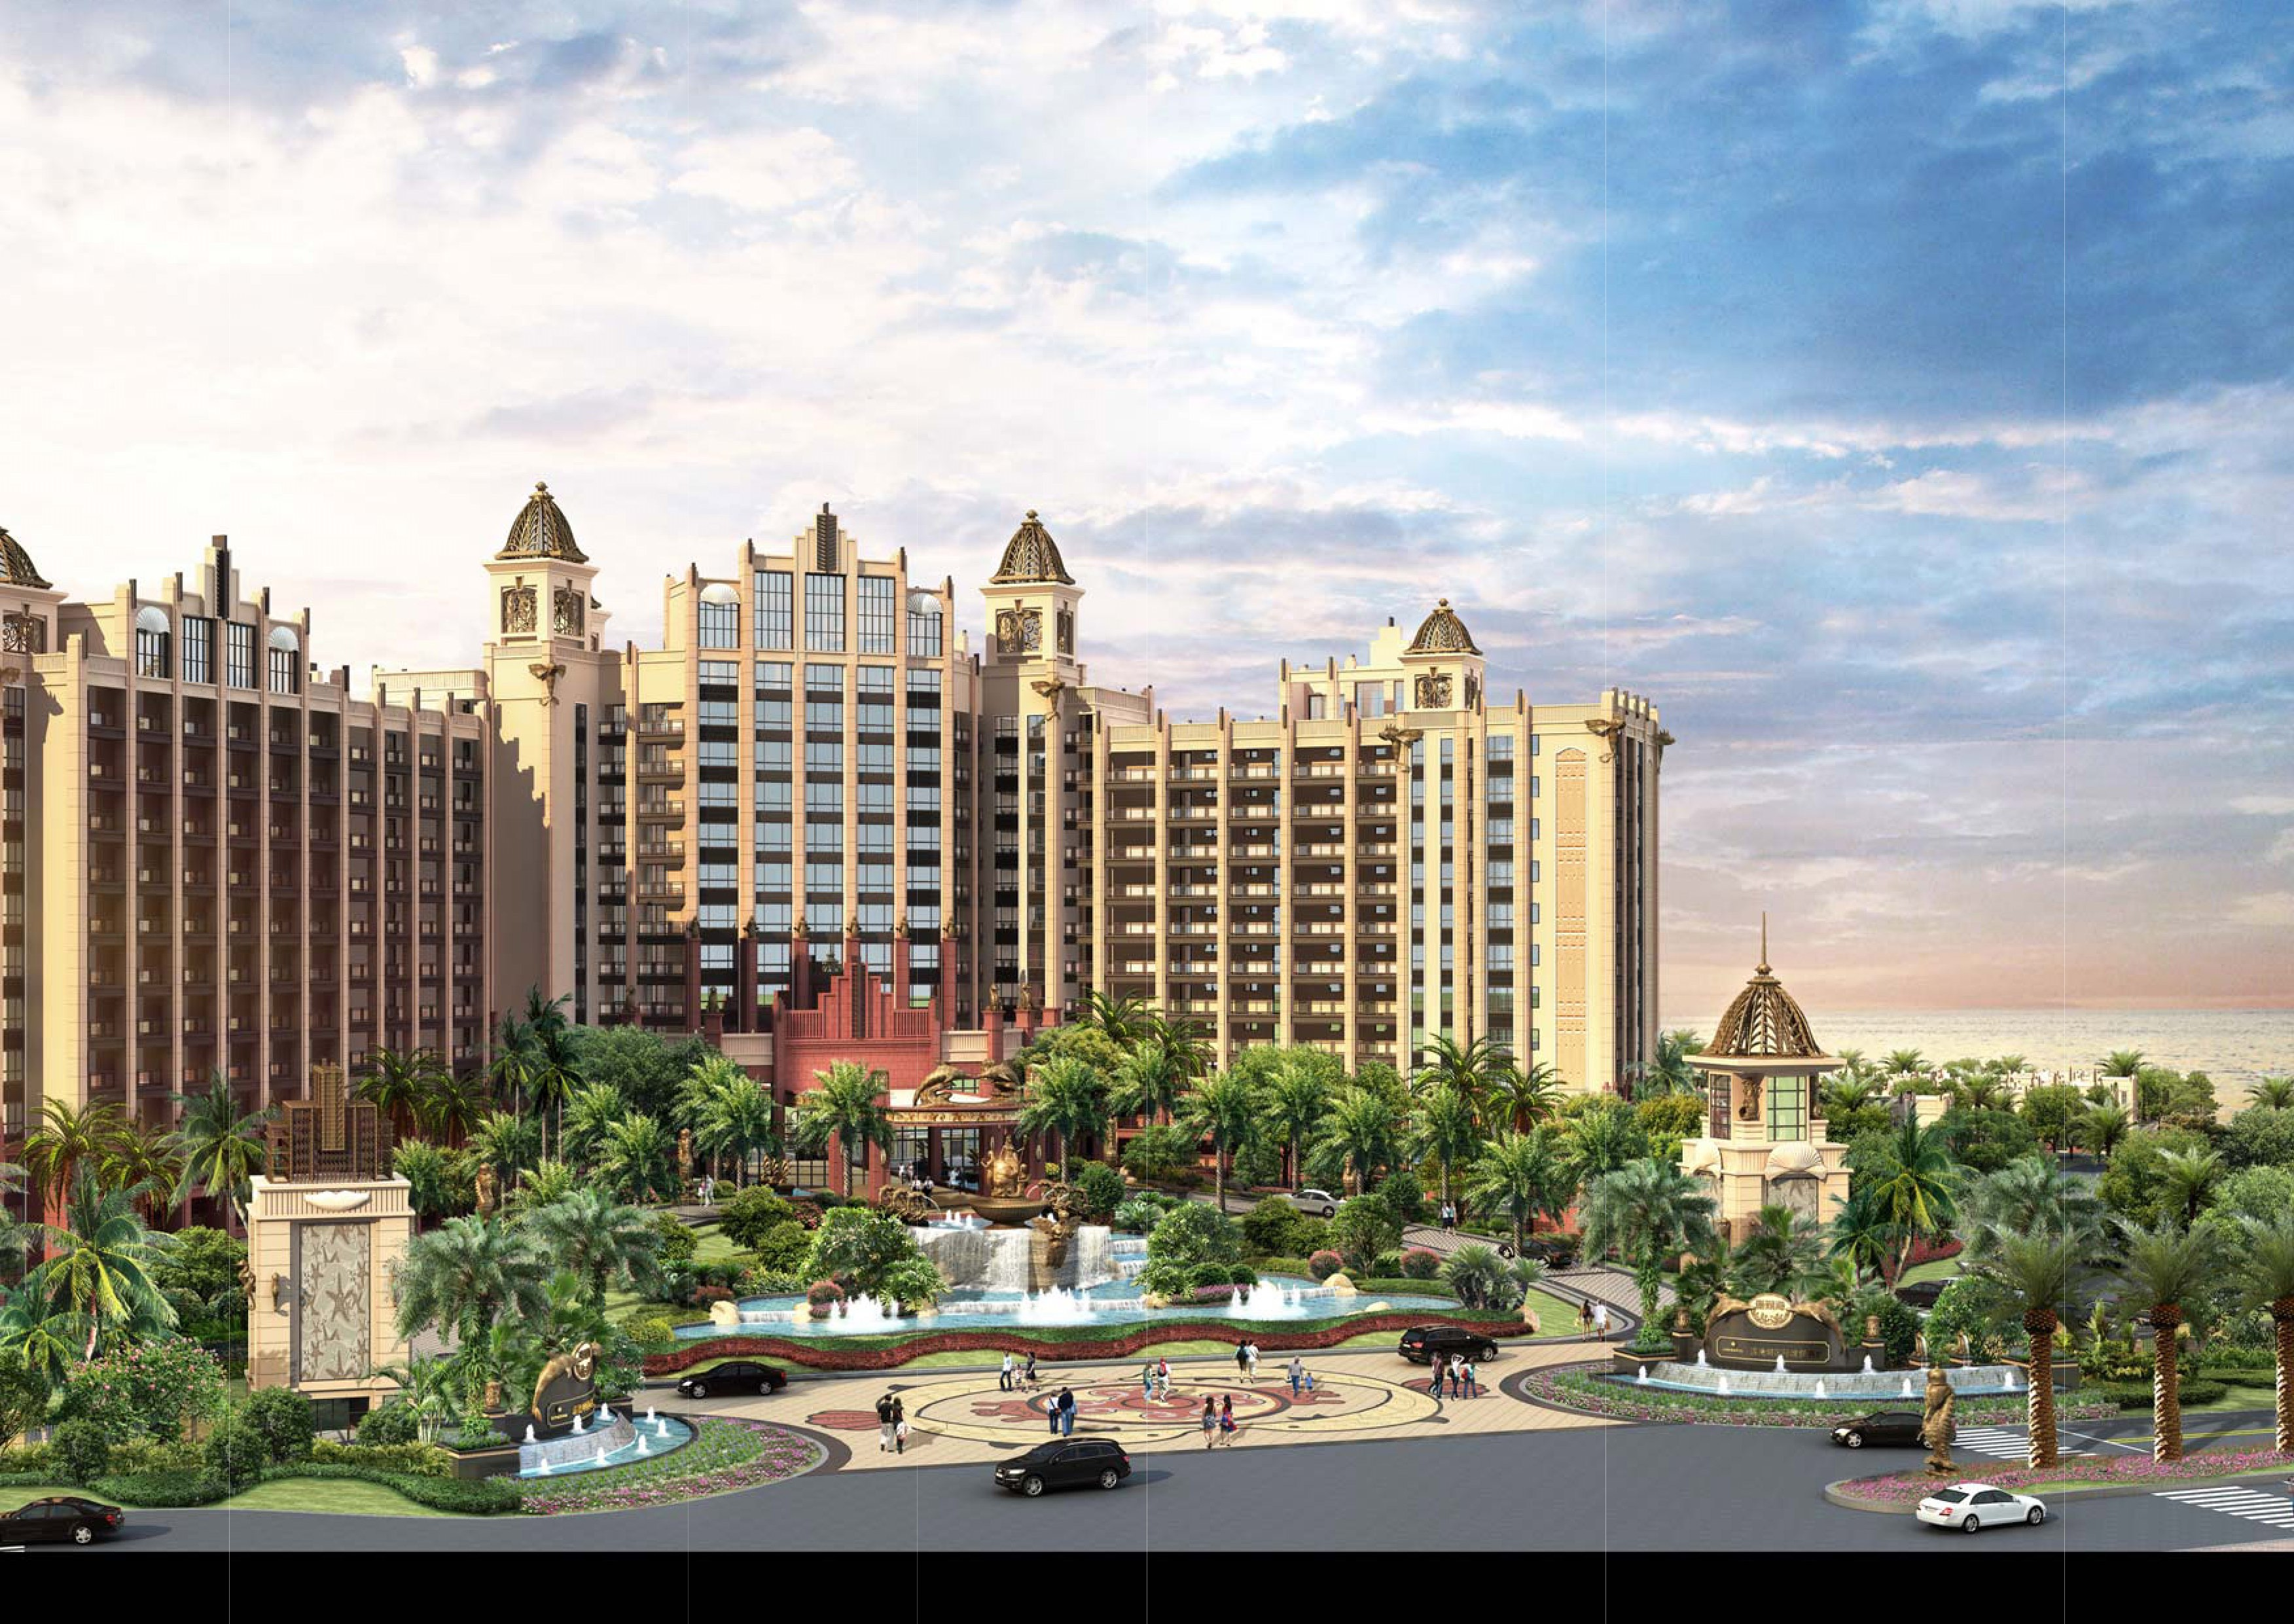 Wyndham Hotel Group Expands Upscale Wyndham Brand In China